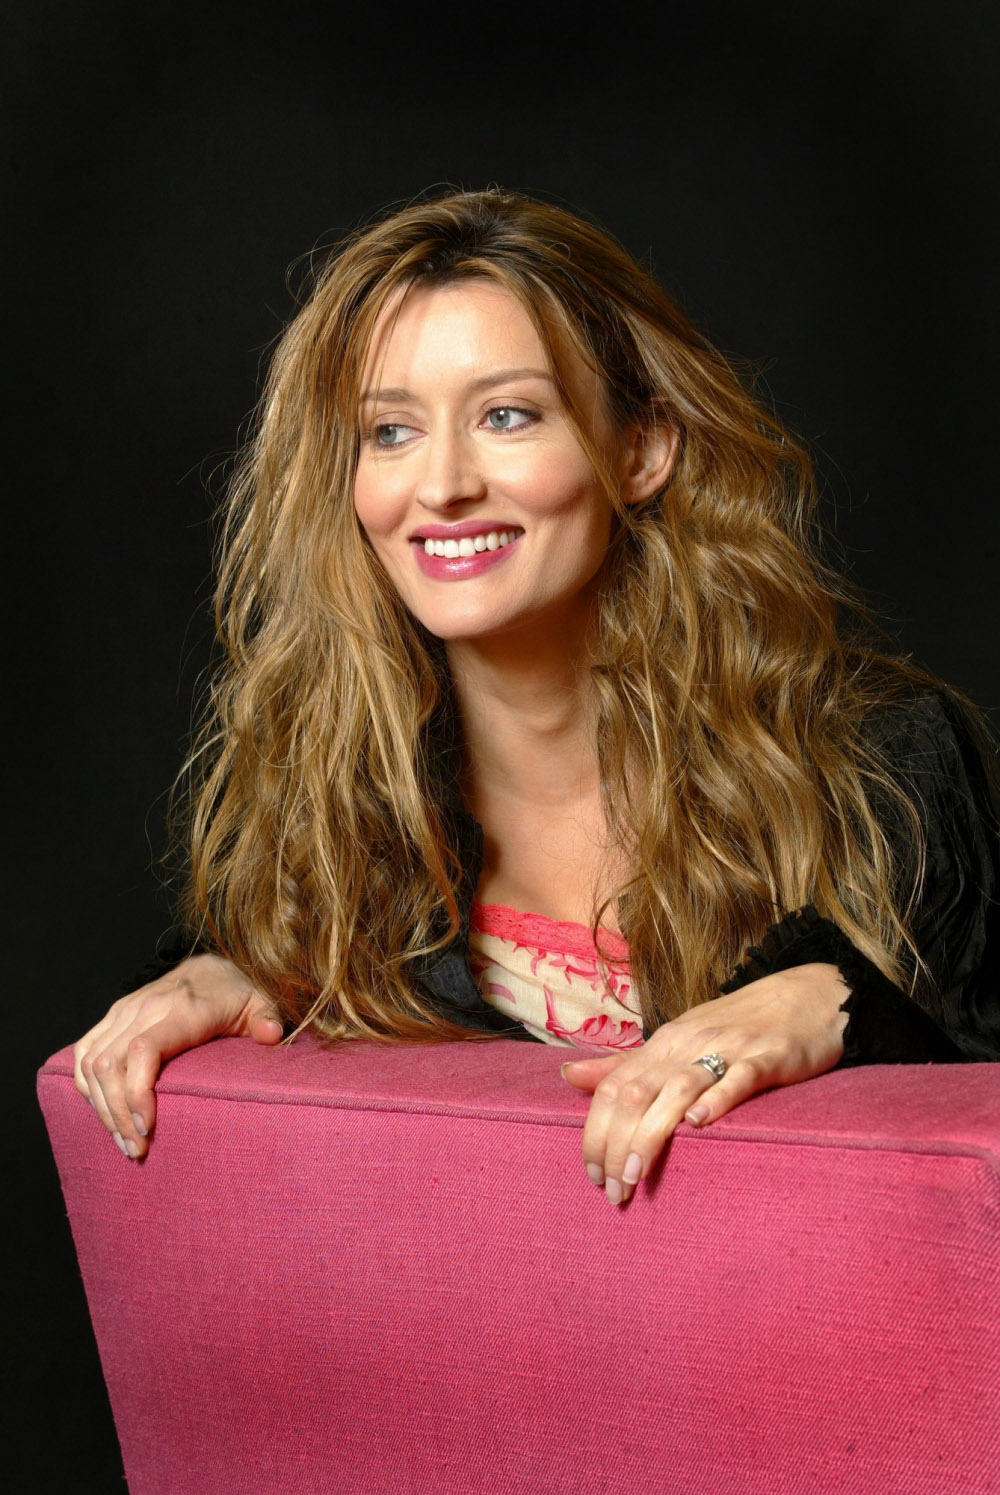 Cute Baby Pc Wallpaper Natascha Mcelhone Wallpapers Hd Free Download